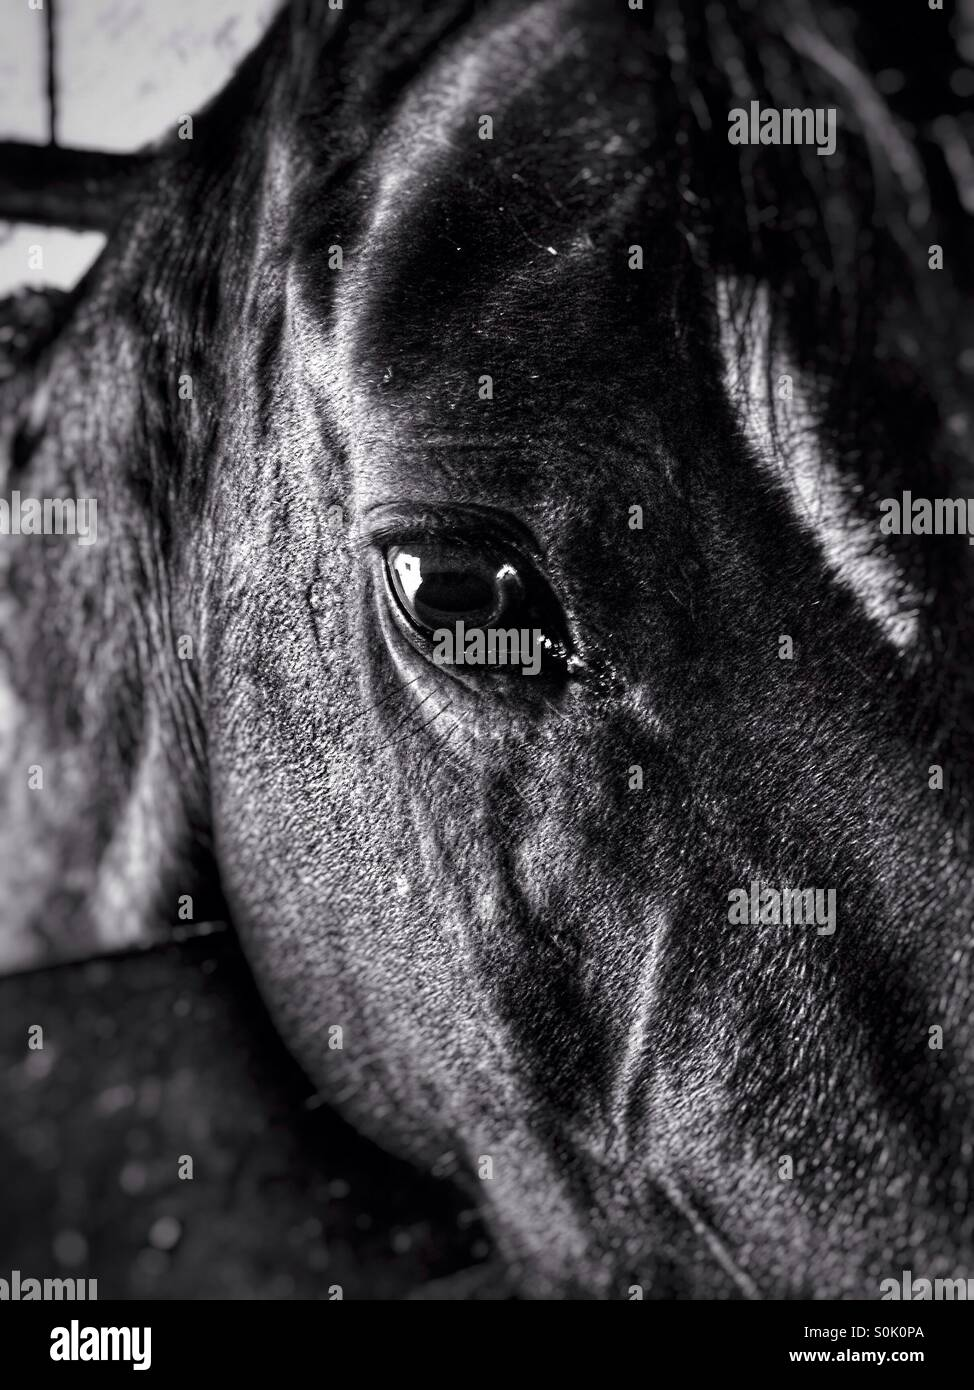 Horse face close-up - Stock Image